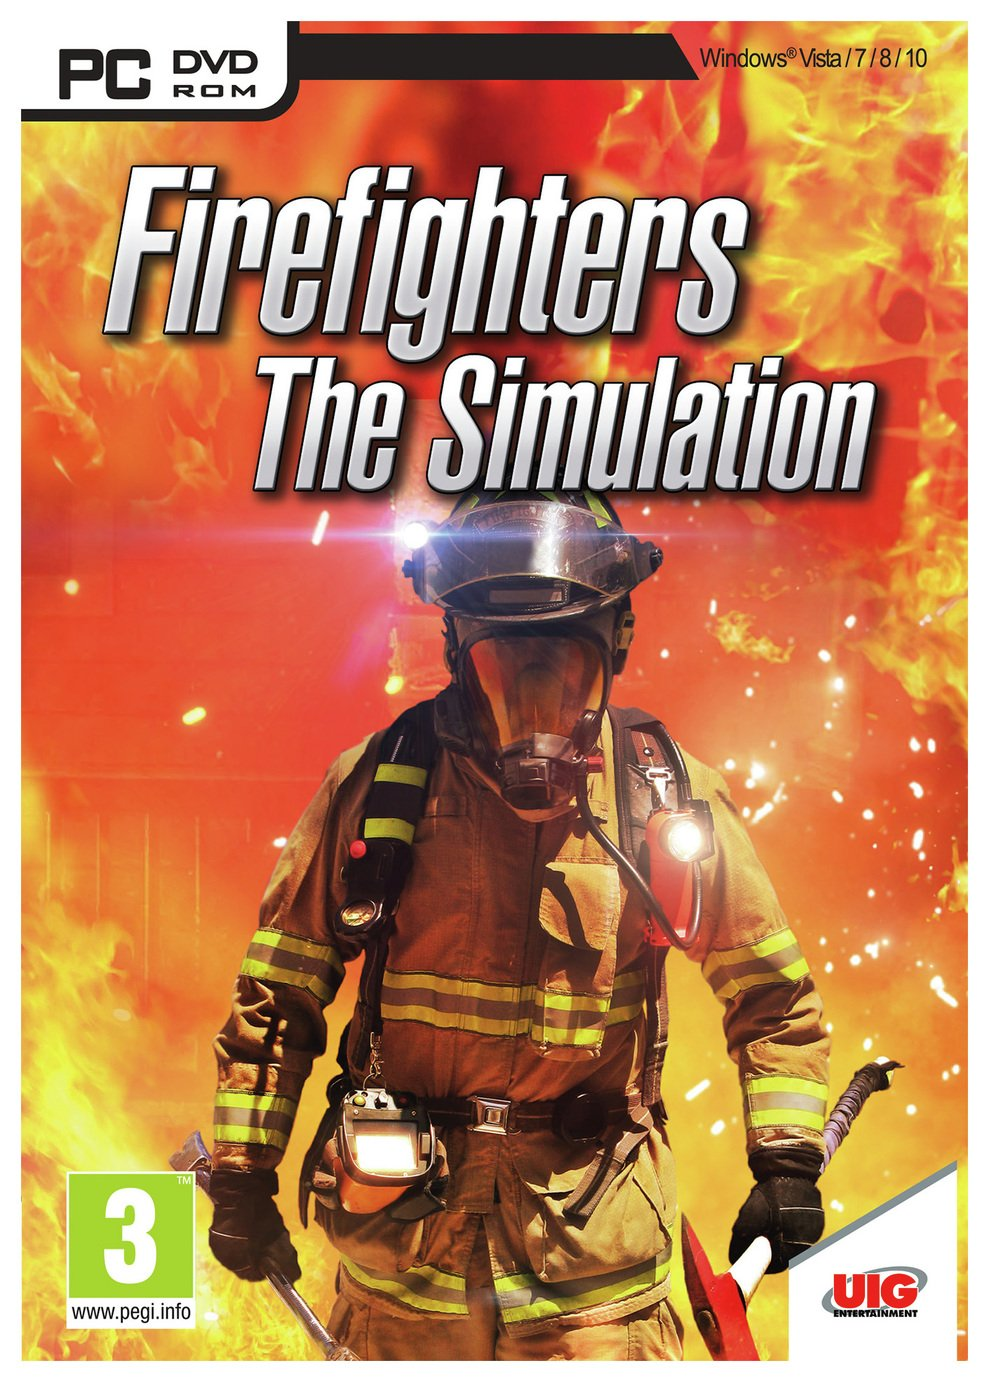 Firefighters The Simulation PC Game